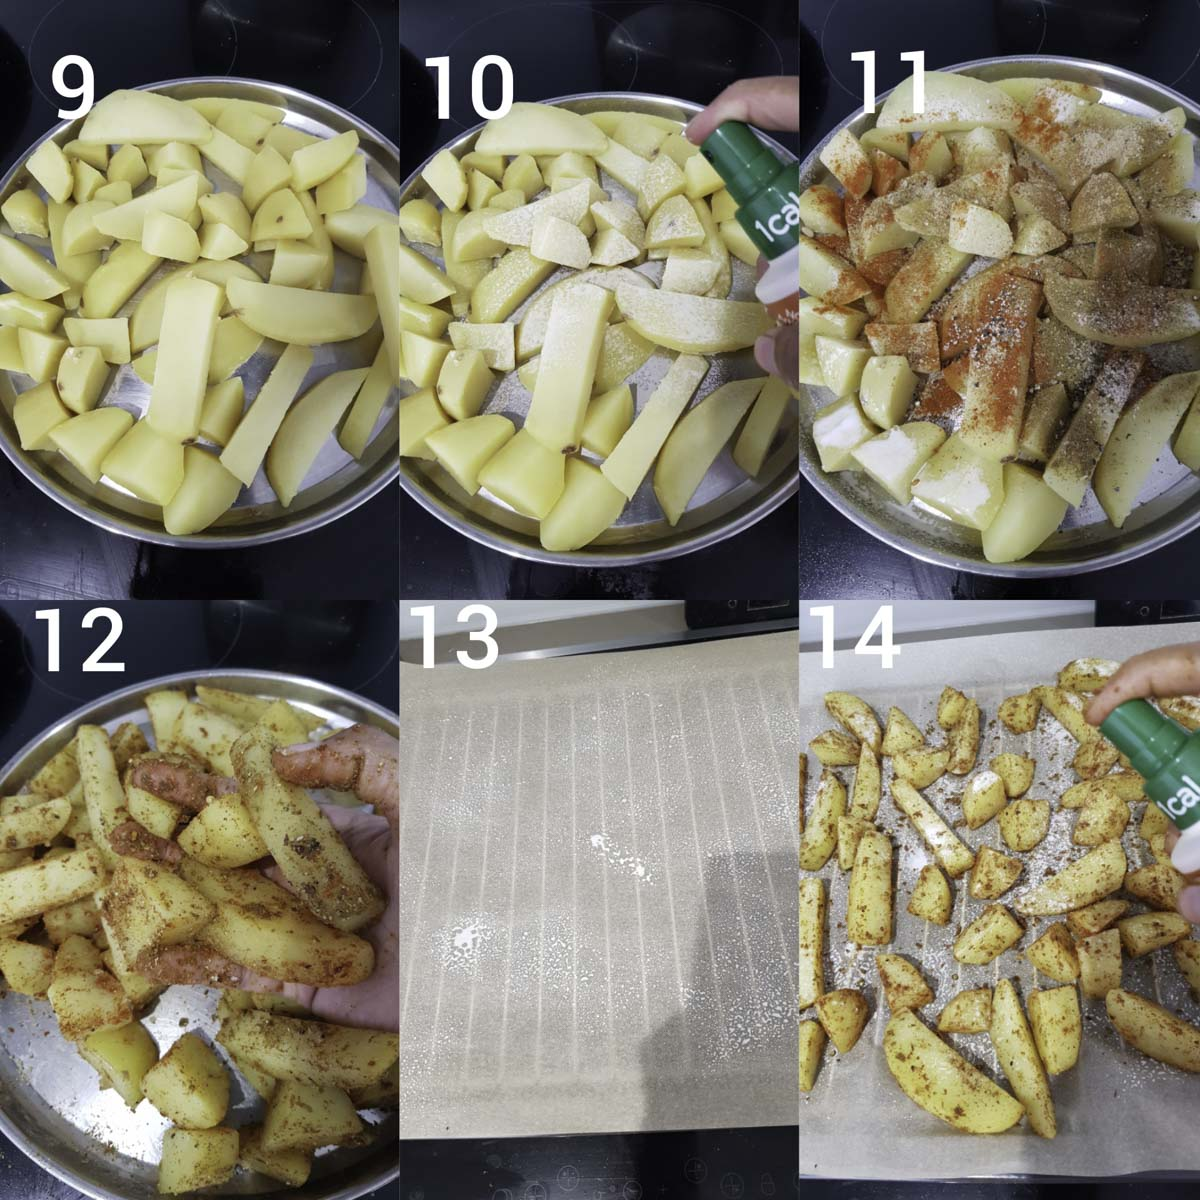 step by step instructions  collage for coating the potatoes with Moroccan spices and oil, arranging them in baking the potatoes